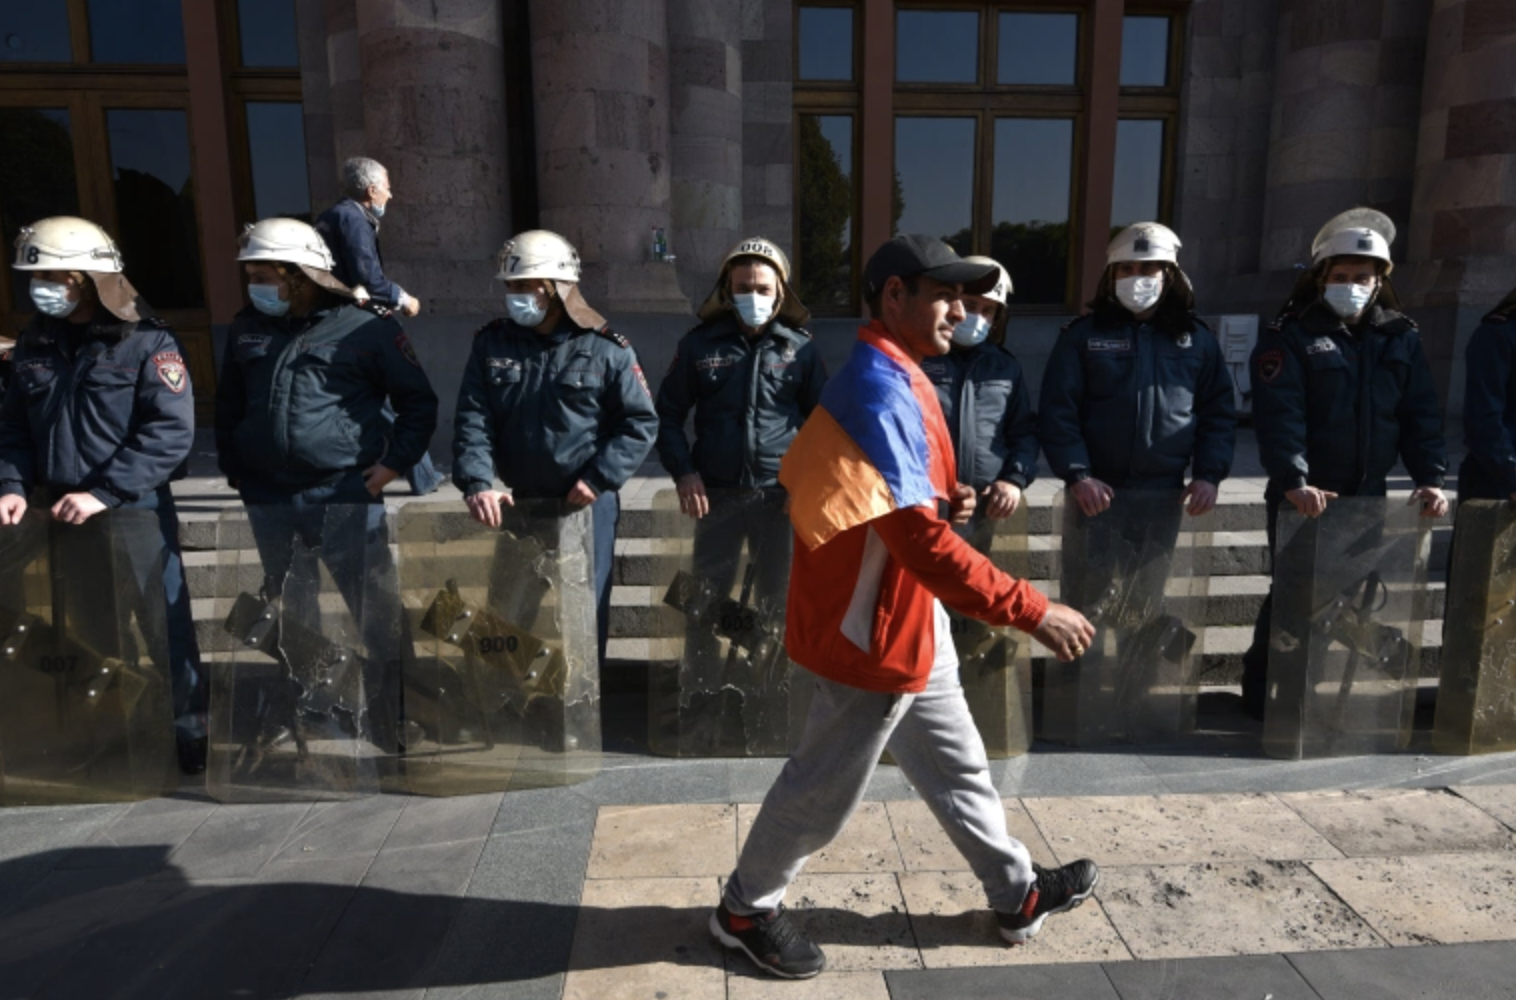 Armenian Economy Minister Tenders Resignation Amid Protests